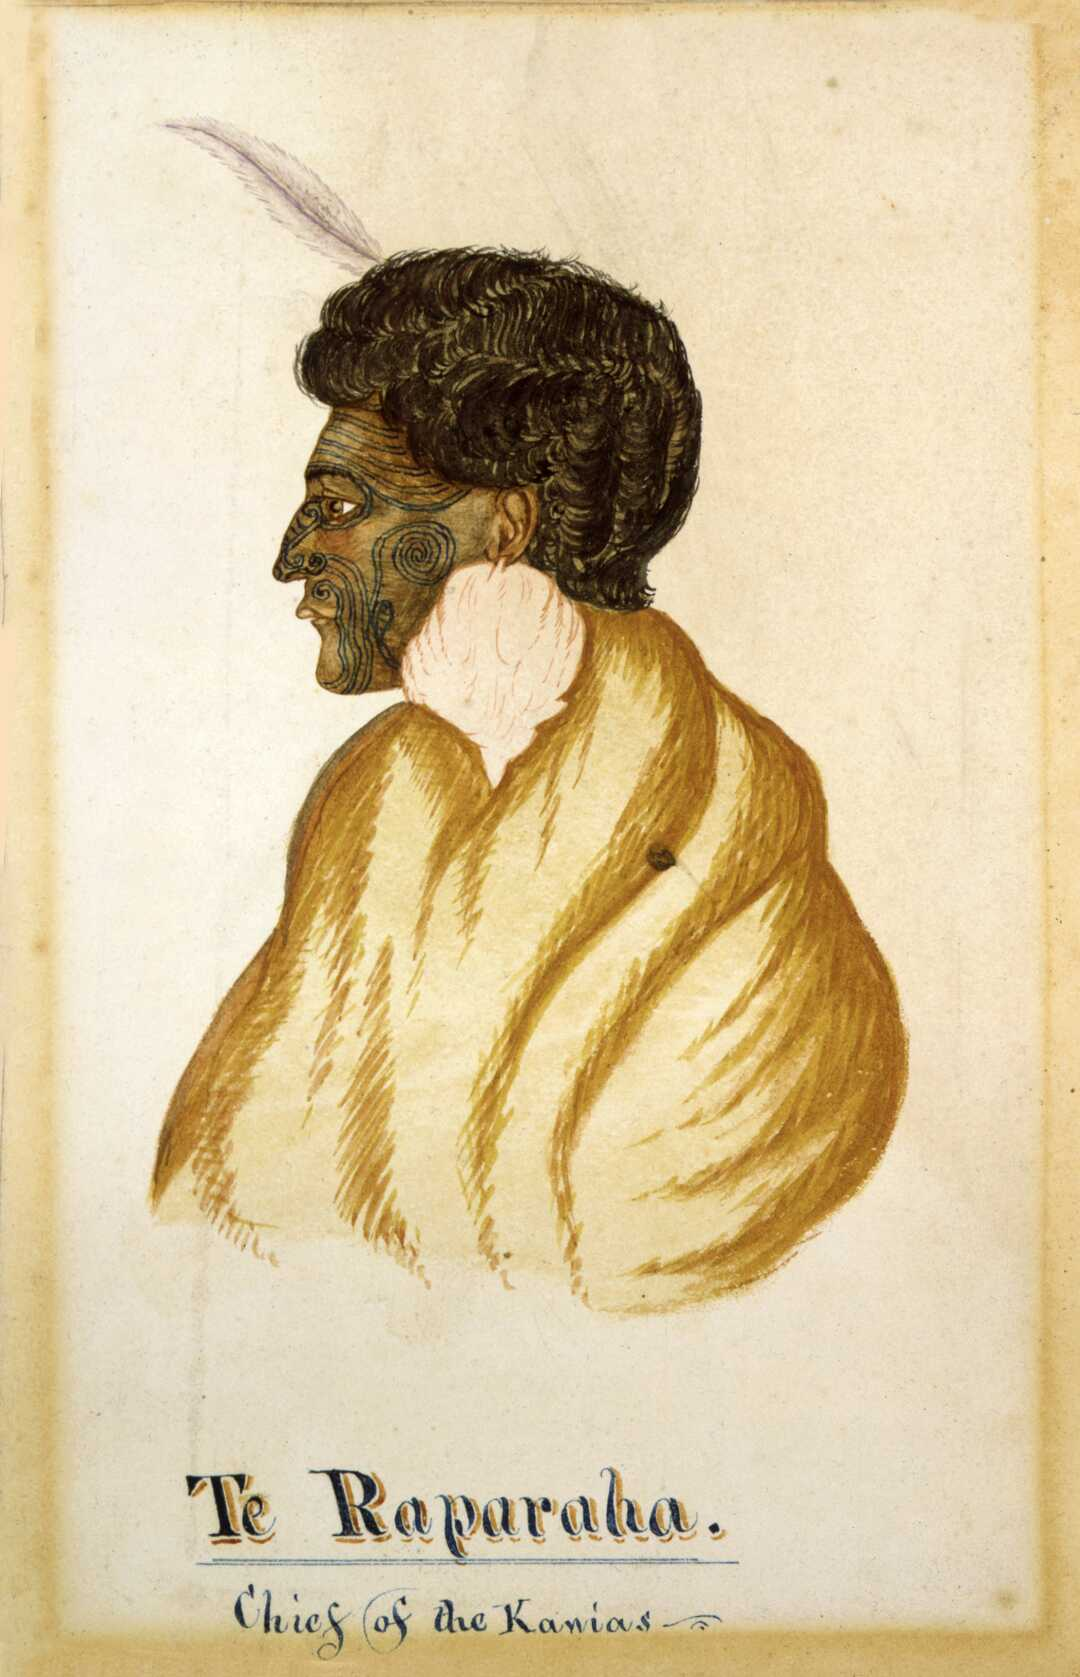 A profile head and shoulders portrait of the Ngāti Toa chief Te Rauparaha, wearing a cloak, a pohoi ear ornament (made from albatross feathers), and a feather in his hair. He has full moko (facial tattoo), circa 1840s. From the collection of the Alexander Turnbull Library in custody of the National Library, Wellington, New Zealand.